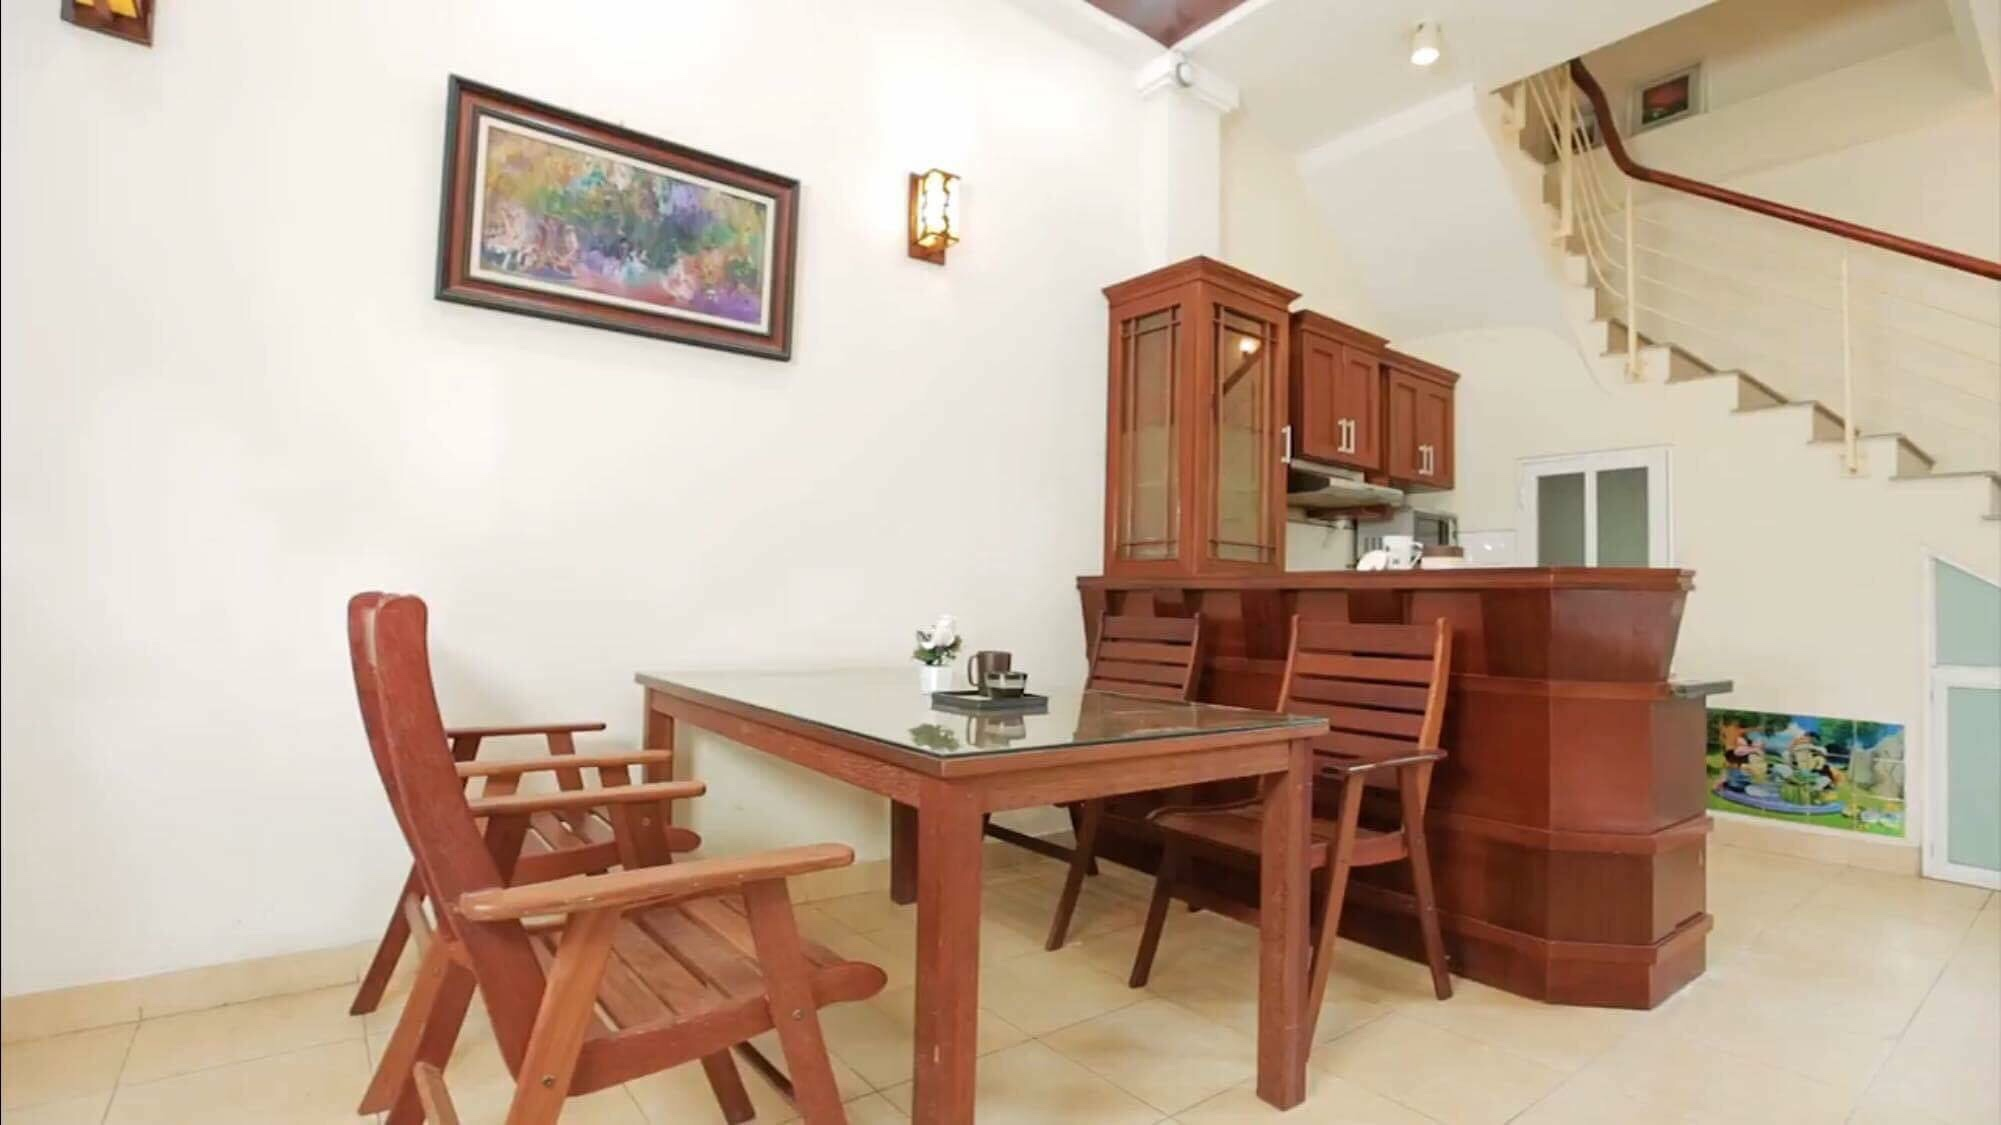 2 bedroom house for rent in Nghi Tam street, Tay Ho